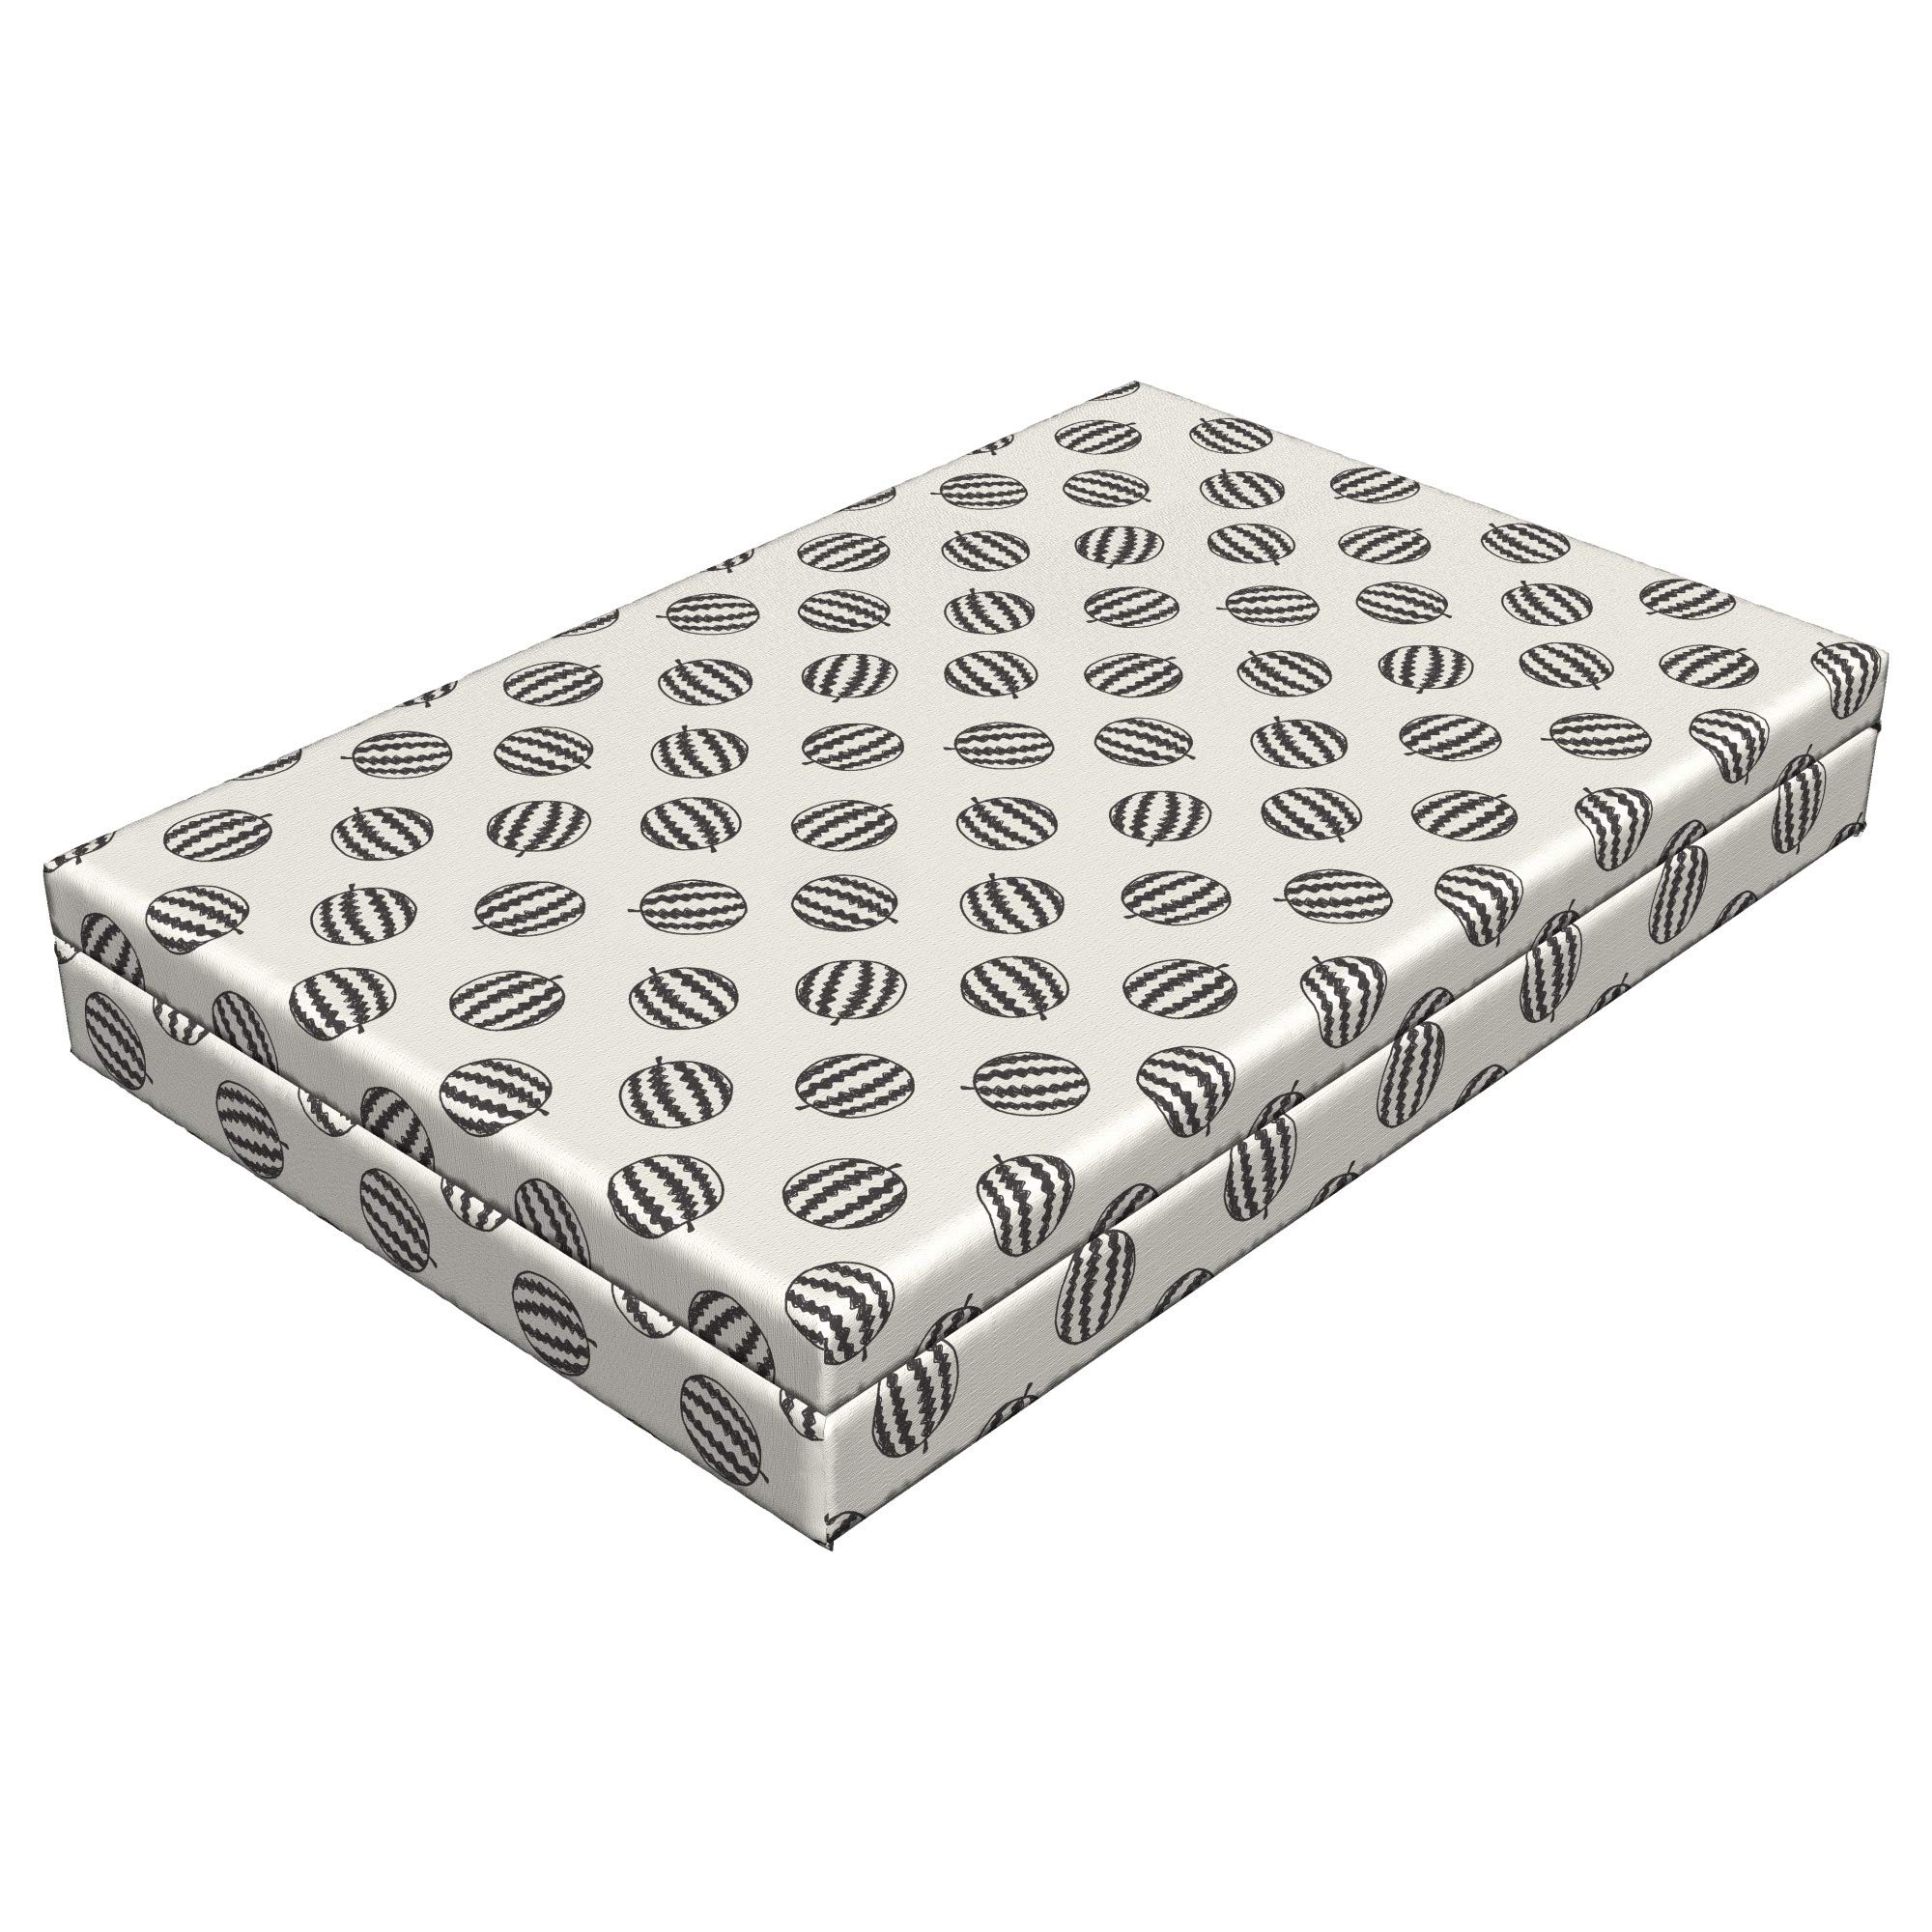 Lunarable Watermelon Dog Bed, Doodle Fruits with Chevron Pattern Summer Season Nature Tropical, Durable Washable Mat with Decorative Fabric Cover, 48'' x 32'' x 6'', Charcoal Grey Eggshell